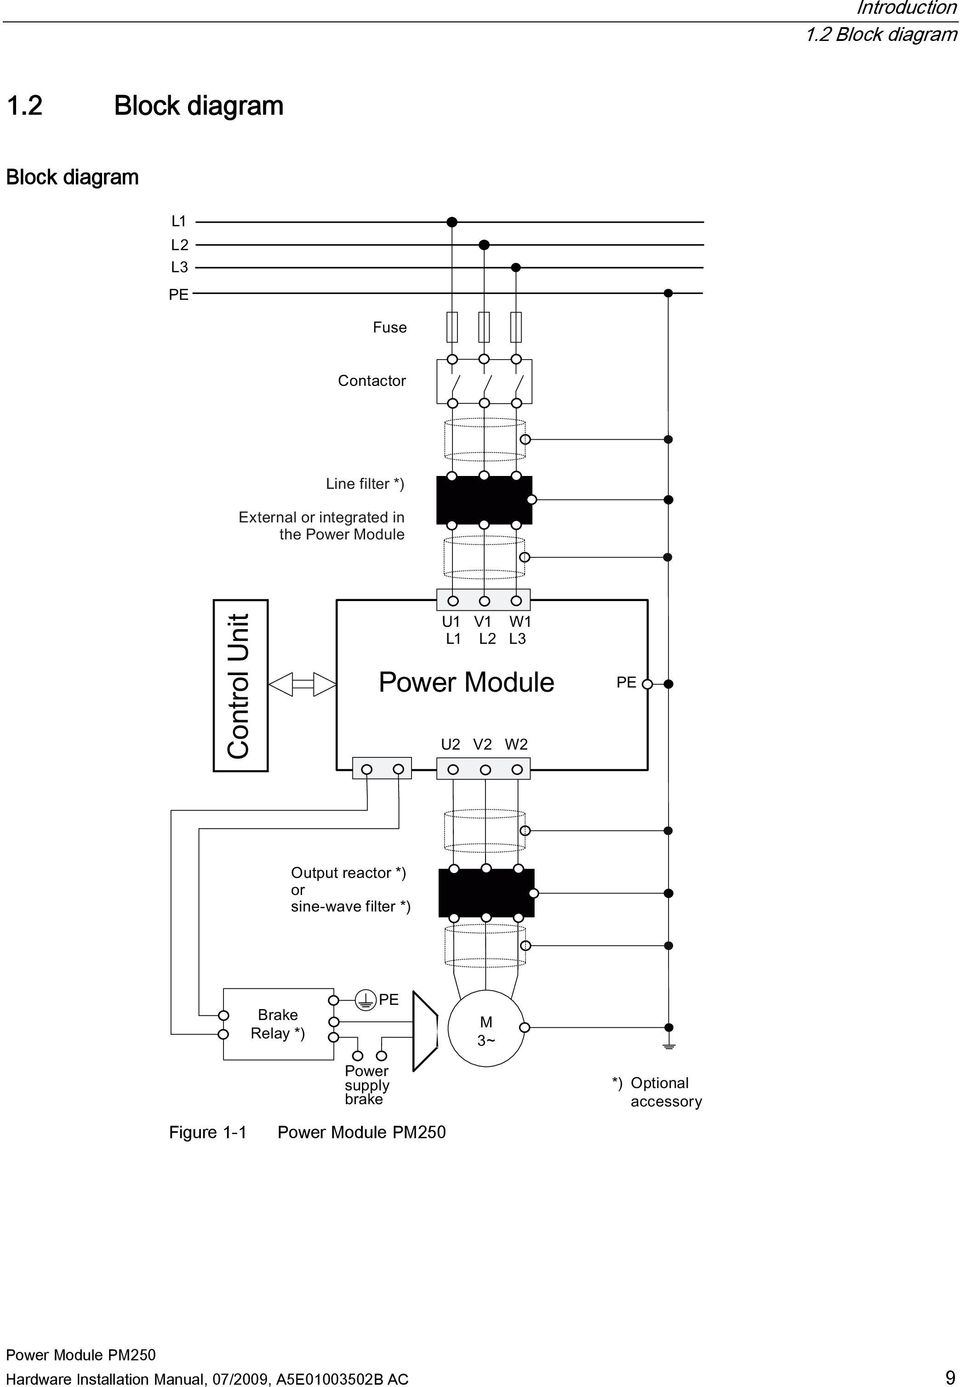 Sinamics g120 power module pm250 hardware installation manual 07 figure 1 1 hardware installation asfbconference2016 Image collections